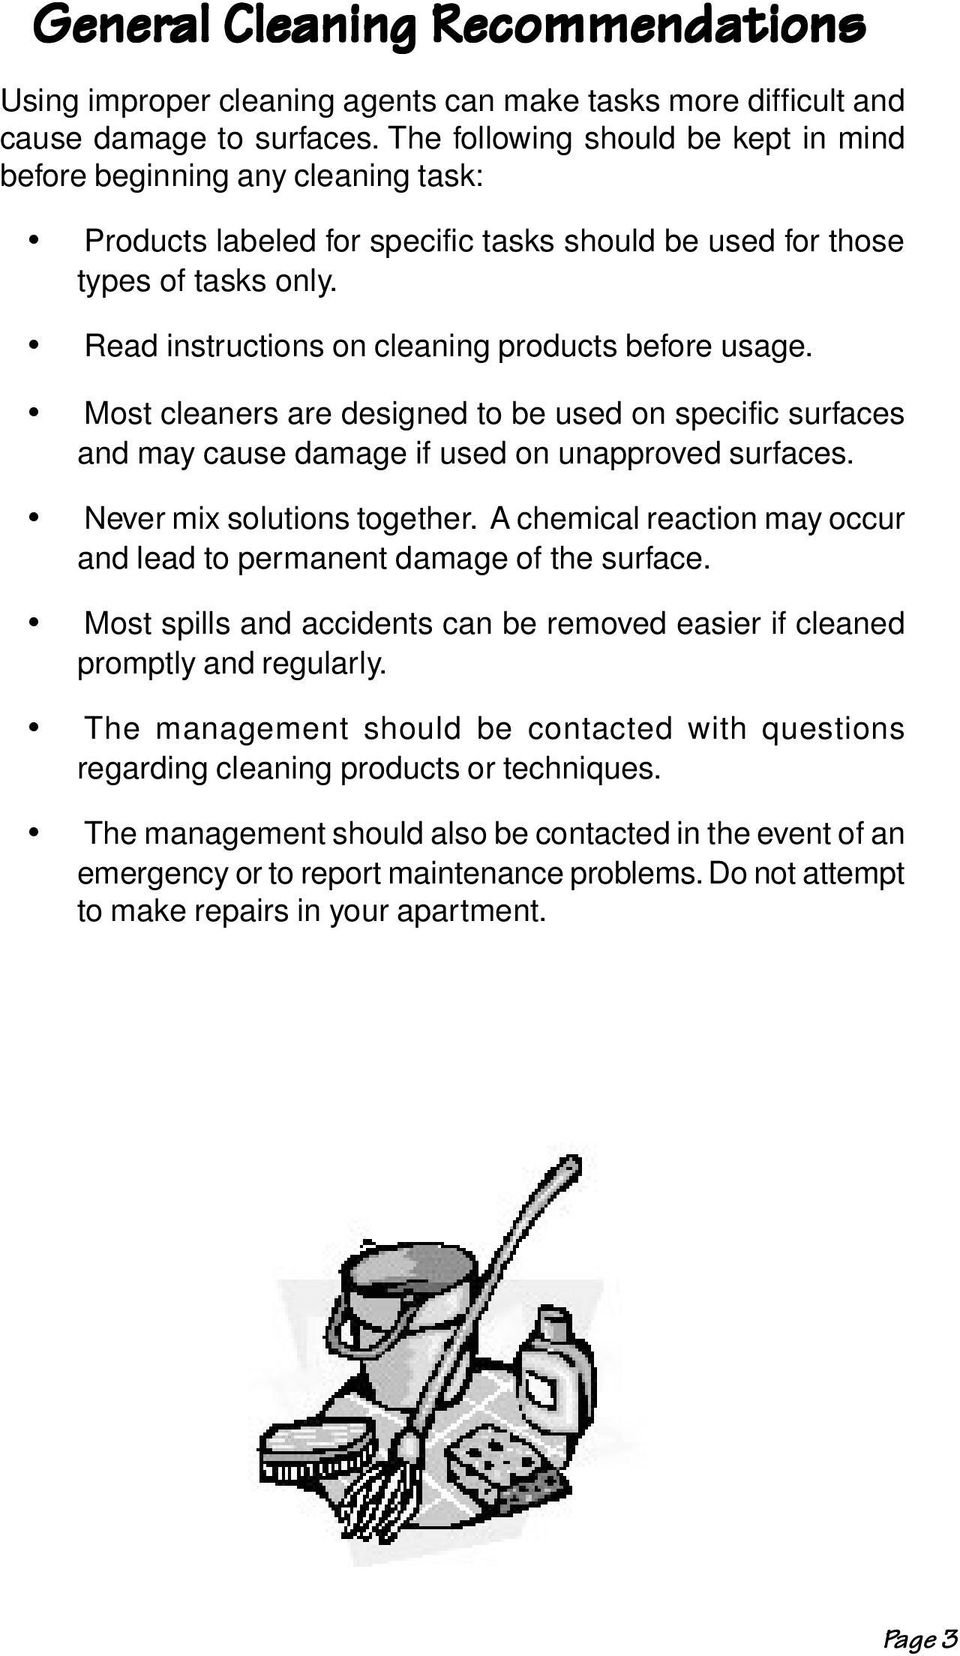 Read instructions on cleaning products before usage. Most cleaners are designed to be used on specific surfaces and may cause damage if used on unapproved surfaces. Never mix solutions together.